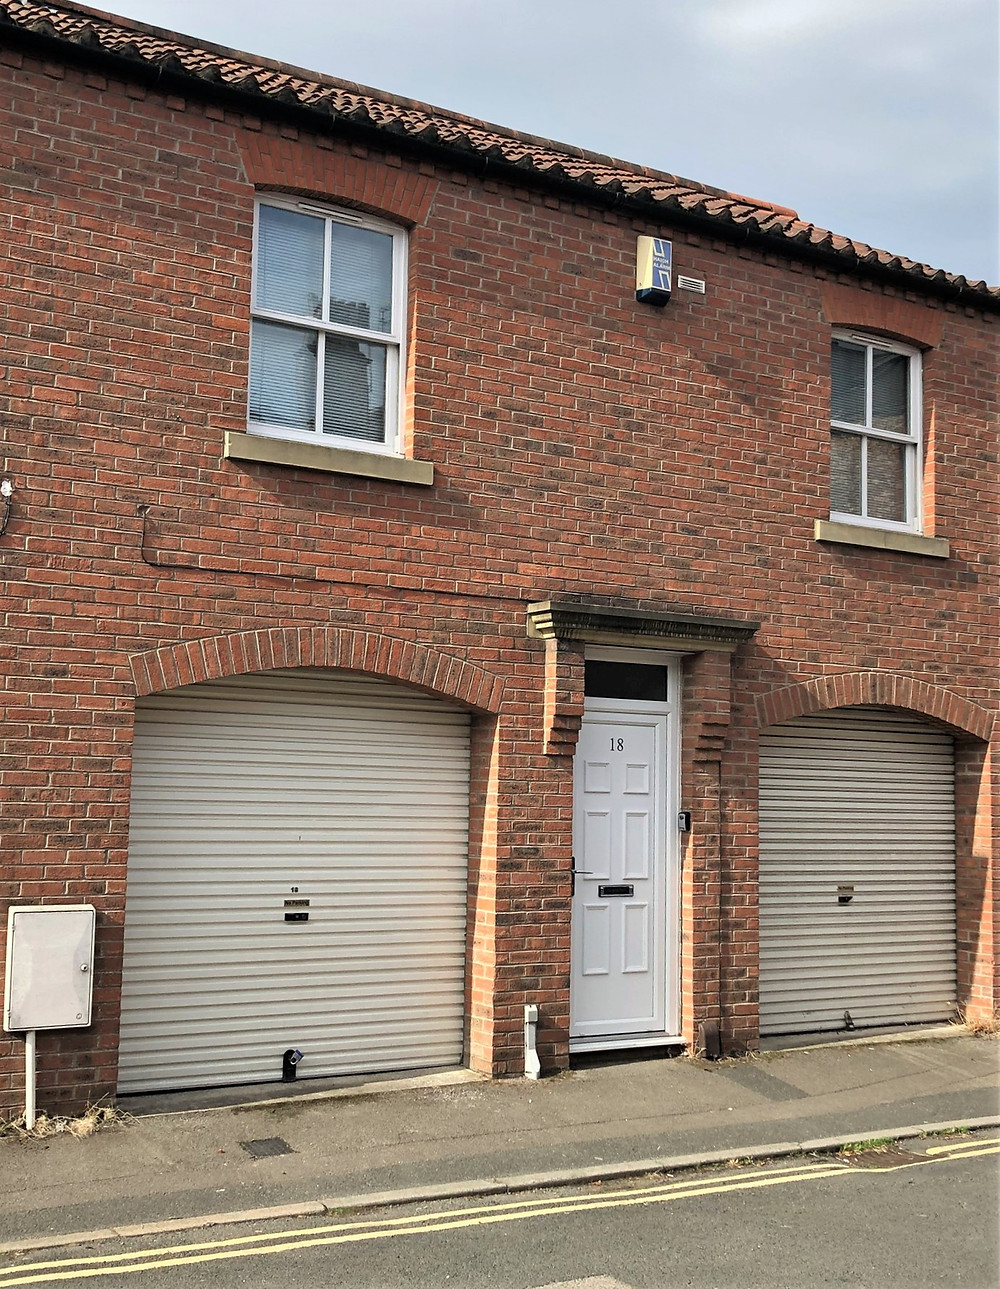 Tiny garage in York, England Airbnb too small for an SUV